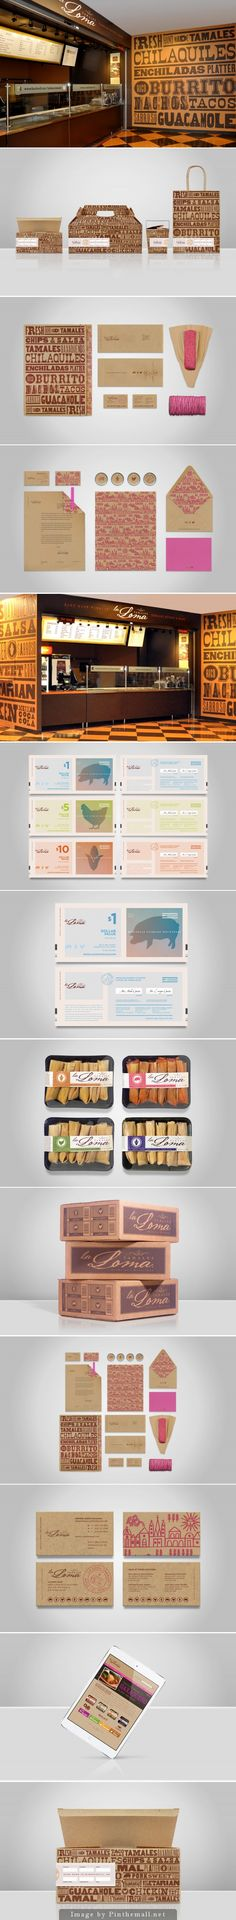 La Loma Tamales by Uno. I love Mexican food identity, packaging, branding curated by Packaging Diva PD created via http://unobranding.com/uno/portfolio-items/la-loma-tamales/